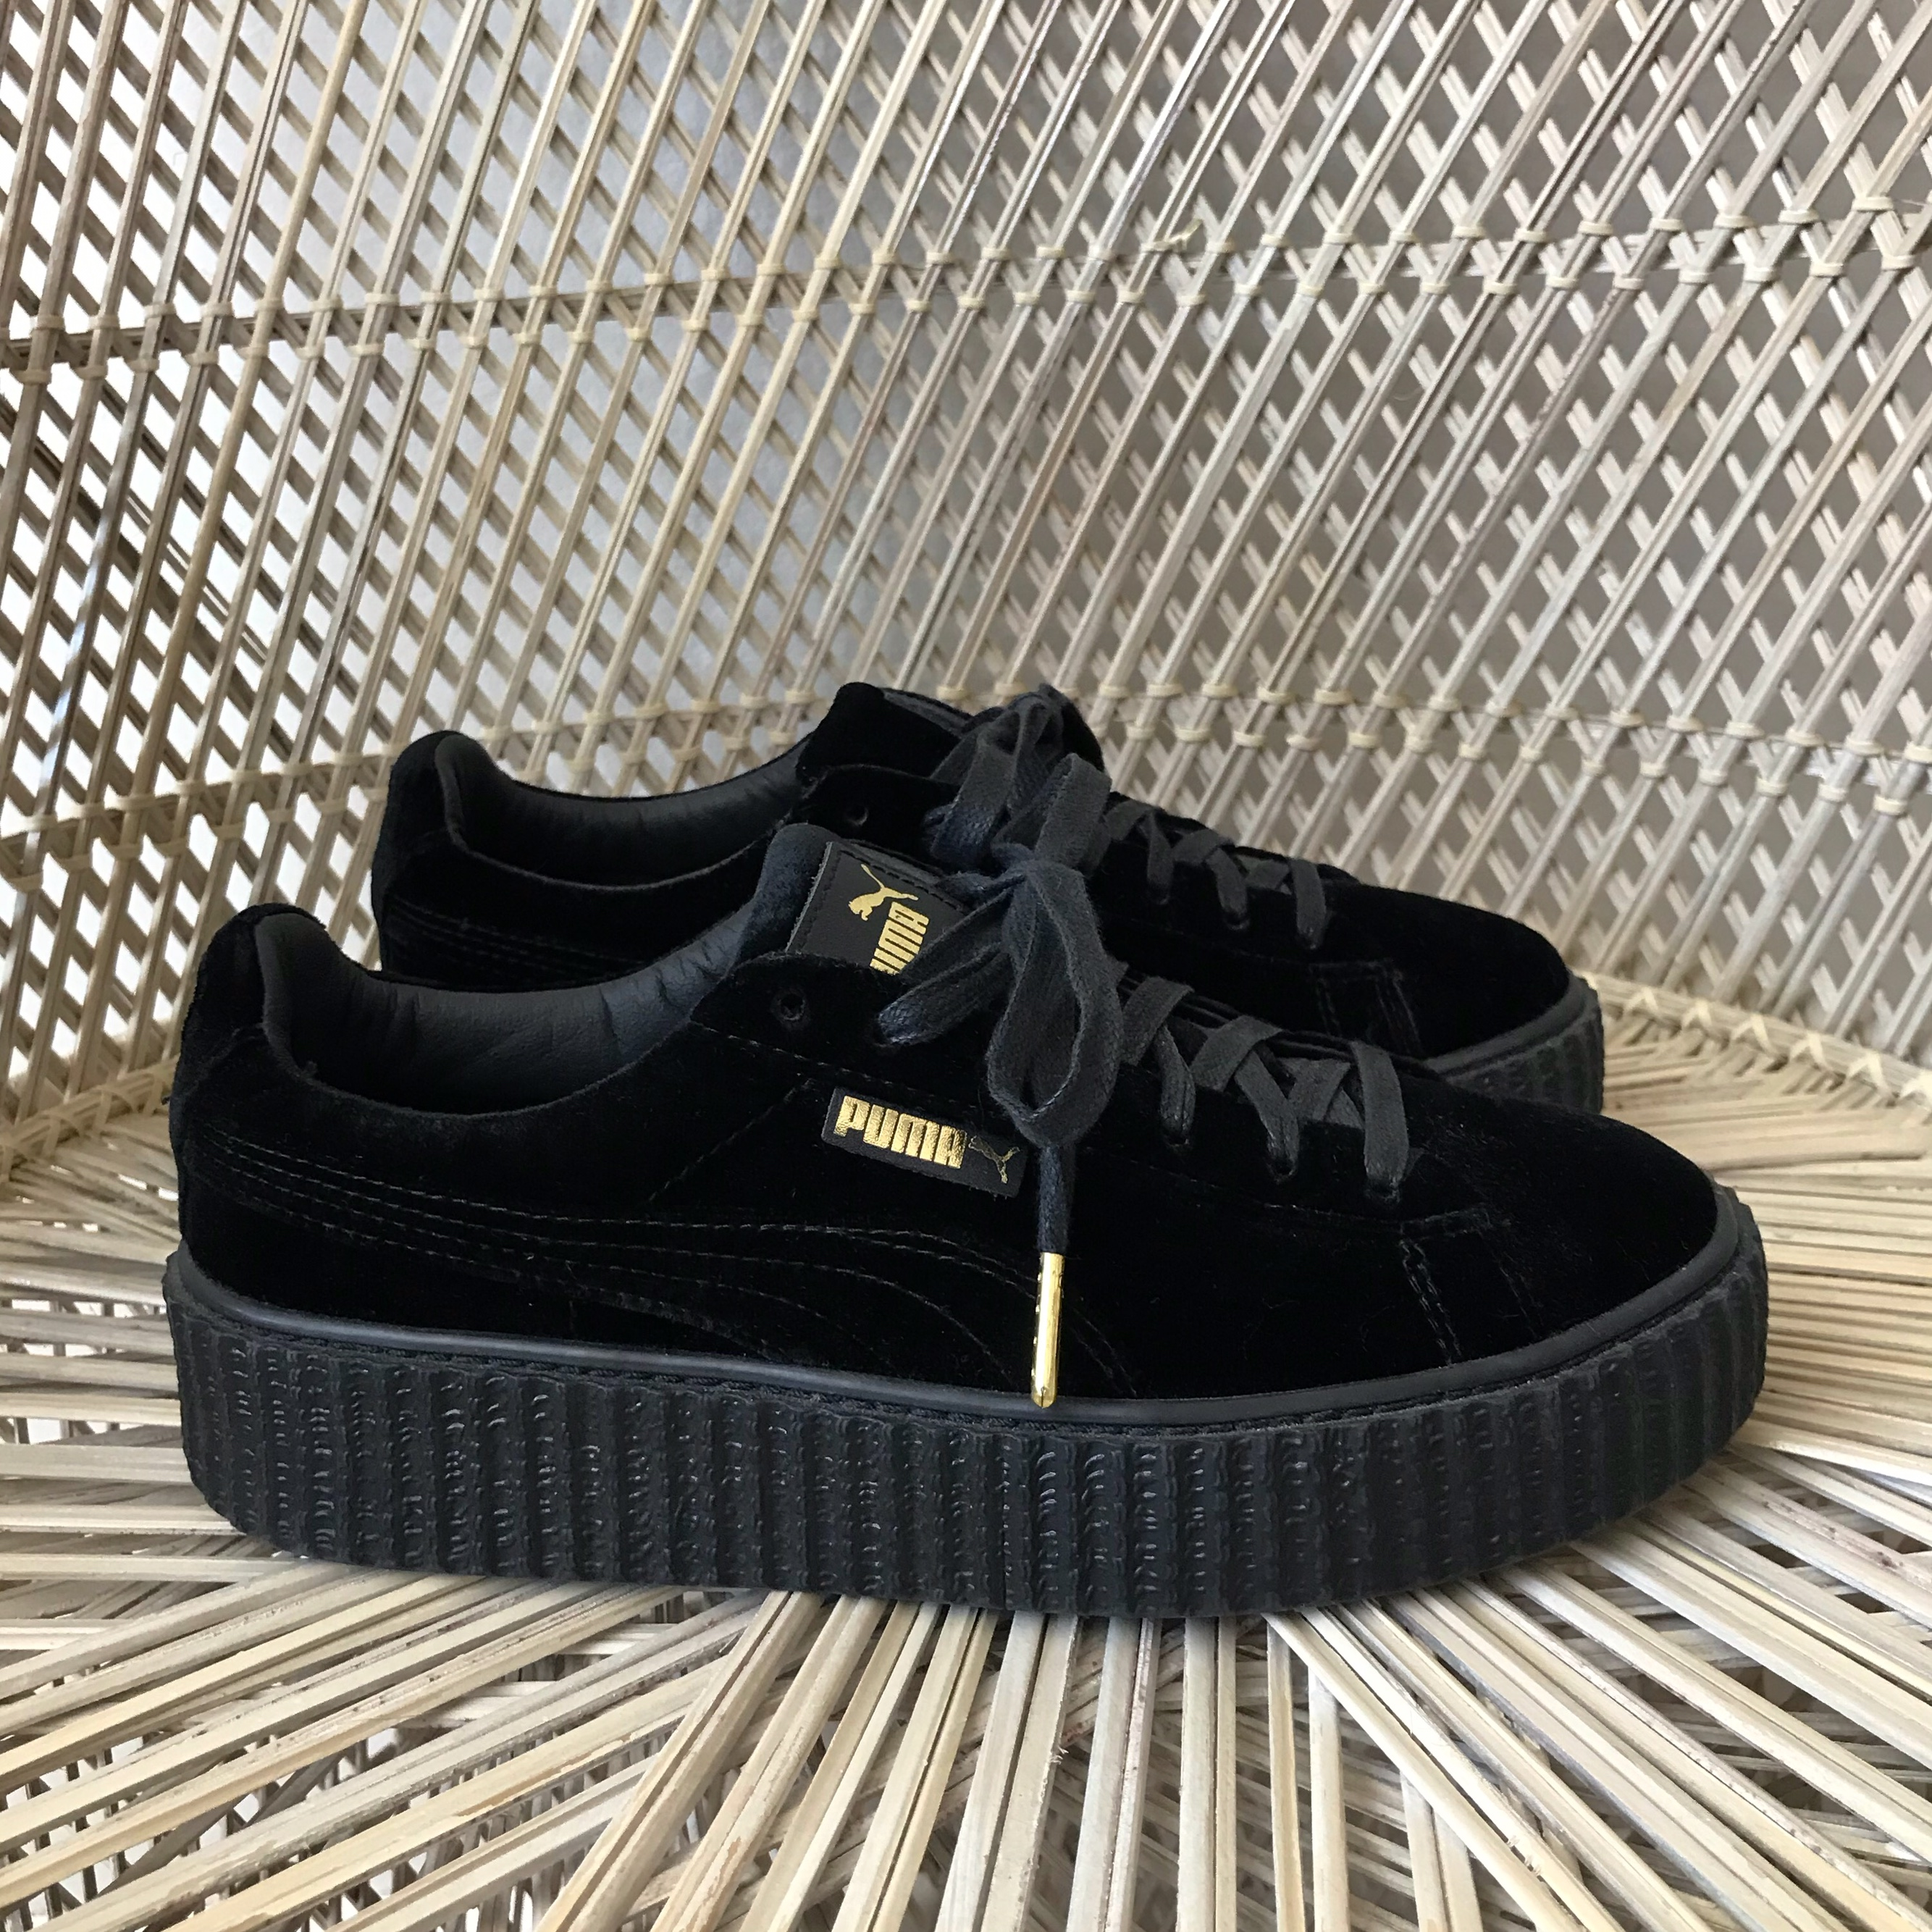 buy popular 6a27c 5c3d5 Fenty Puma by Rihanna black velvet creepers women's ...